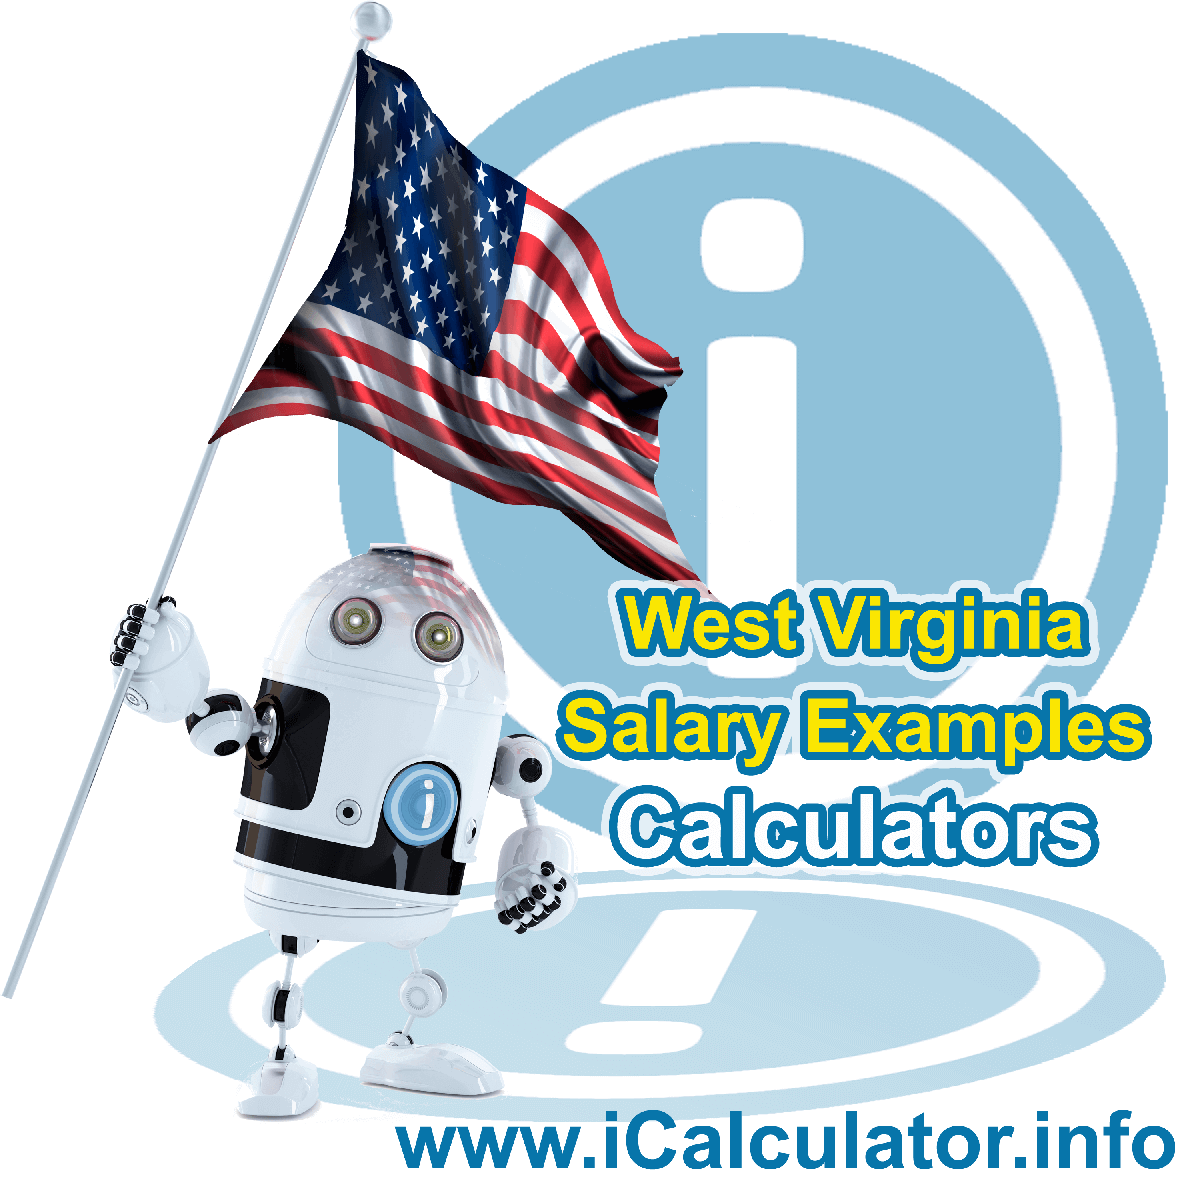 West Virginia Salary Example for a $30.00 Annual Salary in 2020 | iCalculator | $30.00 salary example for employee and employer paying West Virginia State tincome taxes. Detailed salary after tax calculation including West Virginia State Tax, Federal State Tax, Medicare Deductions, Social Security, Capital Gains and other income tax and salary deductions complete with supporting West Virginia state tax tables